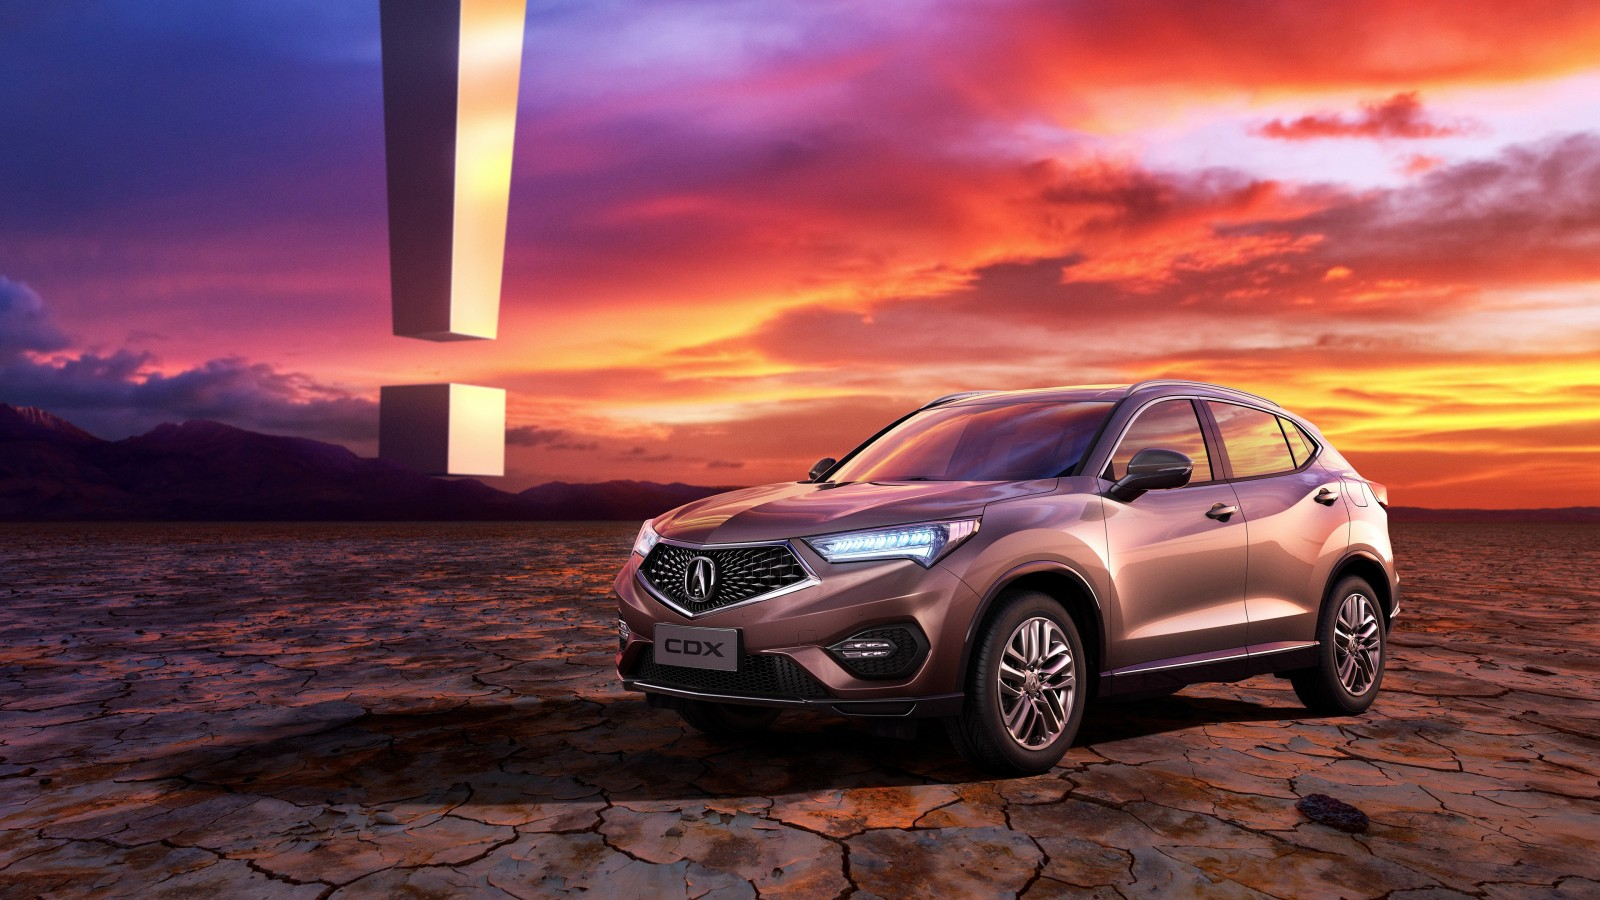 Acura CDX 2017 Wallpaper | HD Car Wallpapers